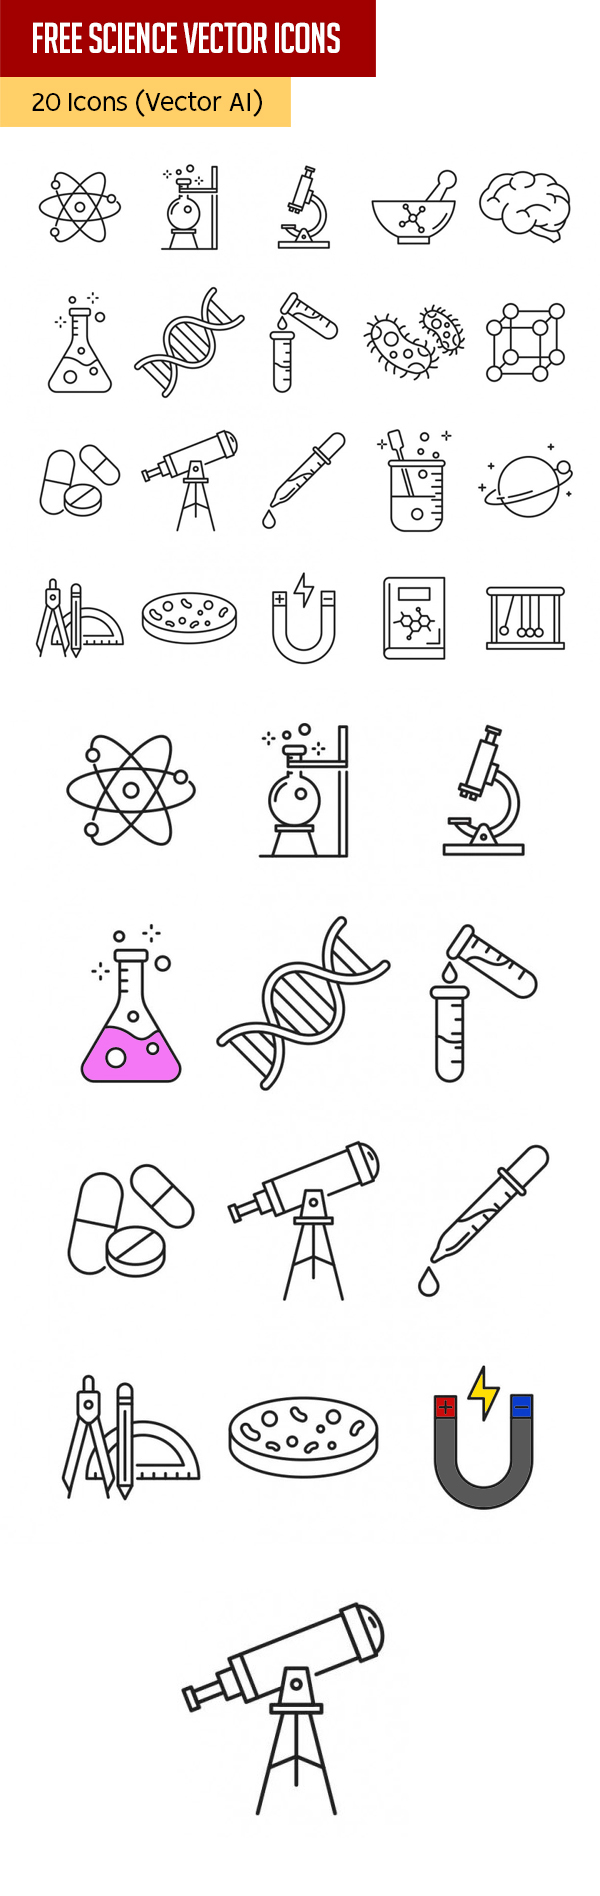 20 Science Vector Icons